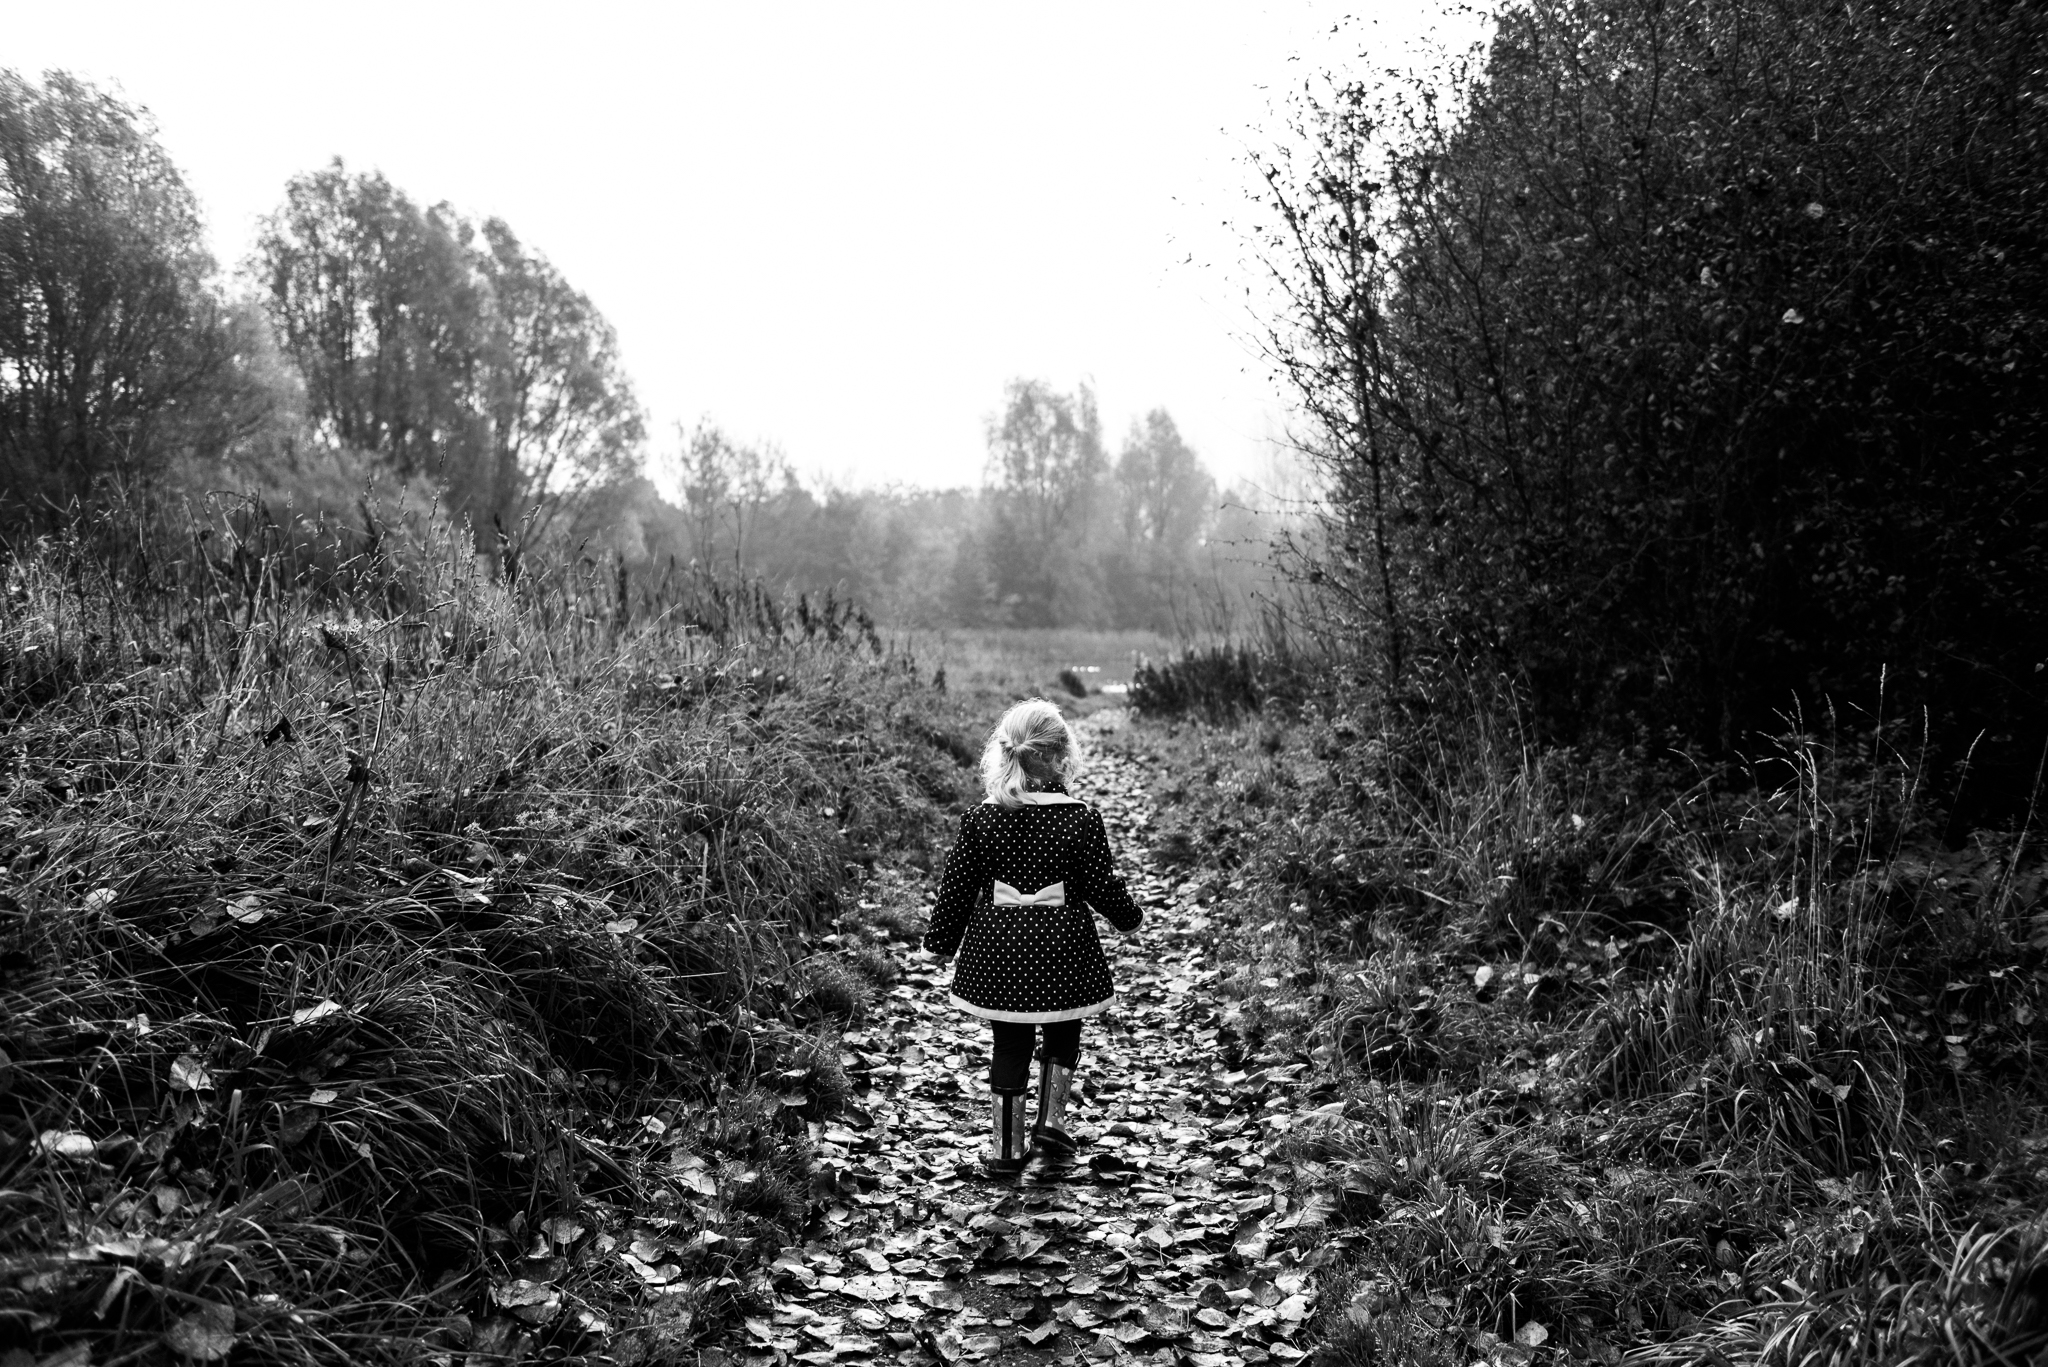 Staffordshire Documentary Family Photography Autumn Lifestyle Fall Leaves - Jenny Harper-10.jpg